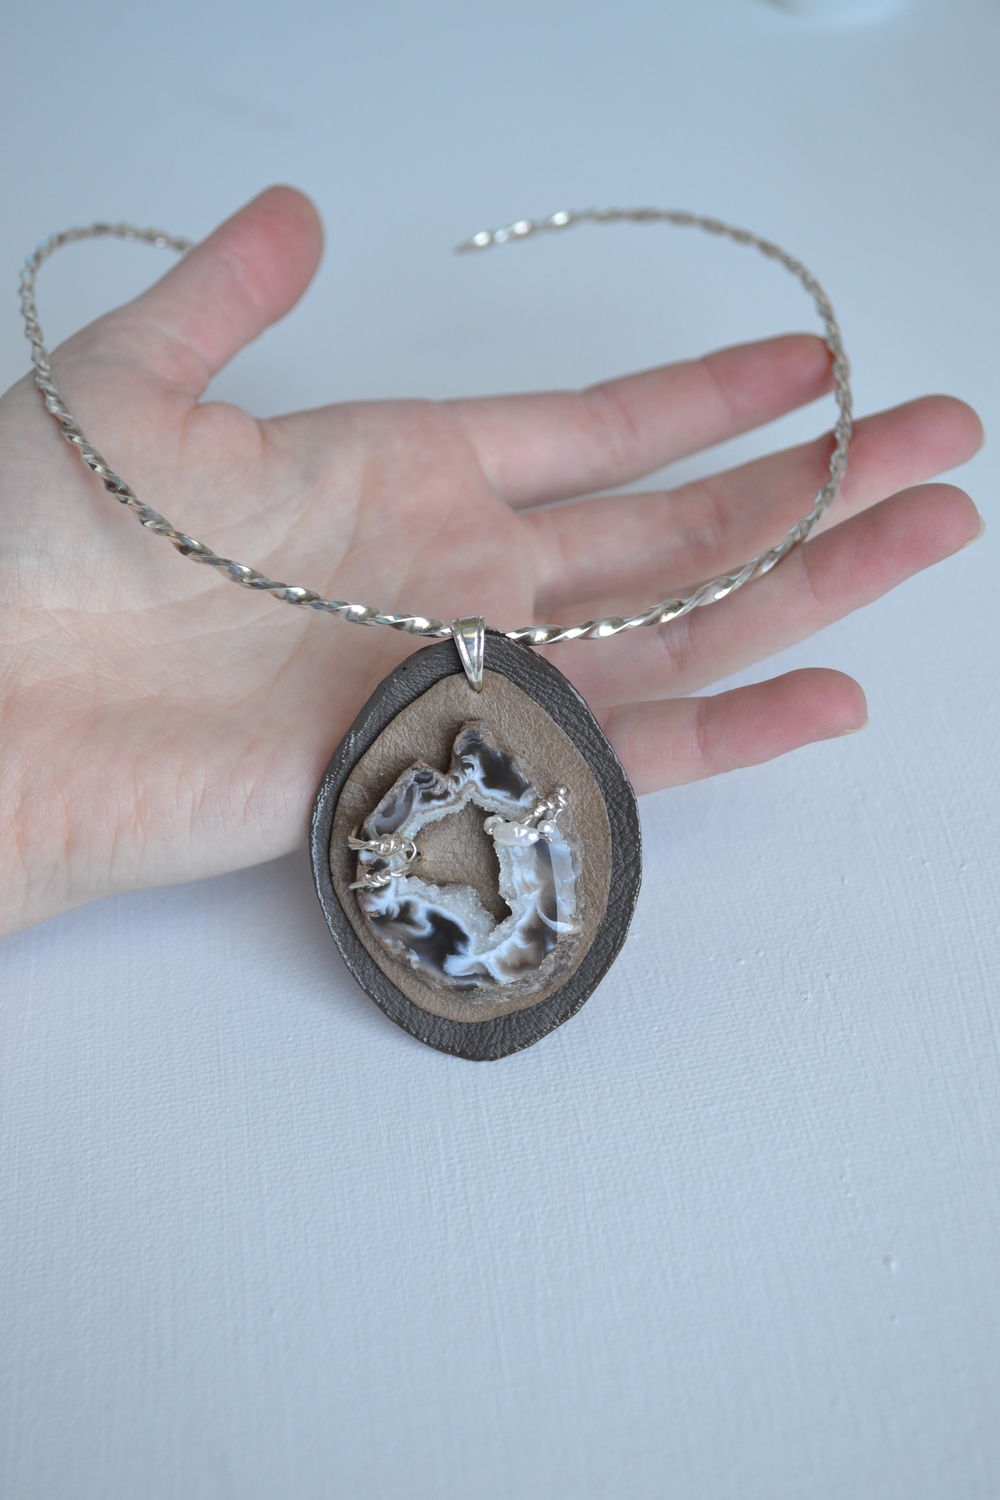 My Favorite Style Of Necklace For Everyday Wear - The Twisted Collar With The Agate Slice Pendant. By lewdesigns.com.JPG